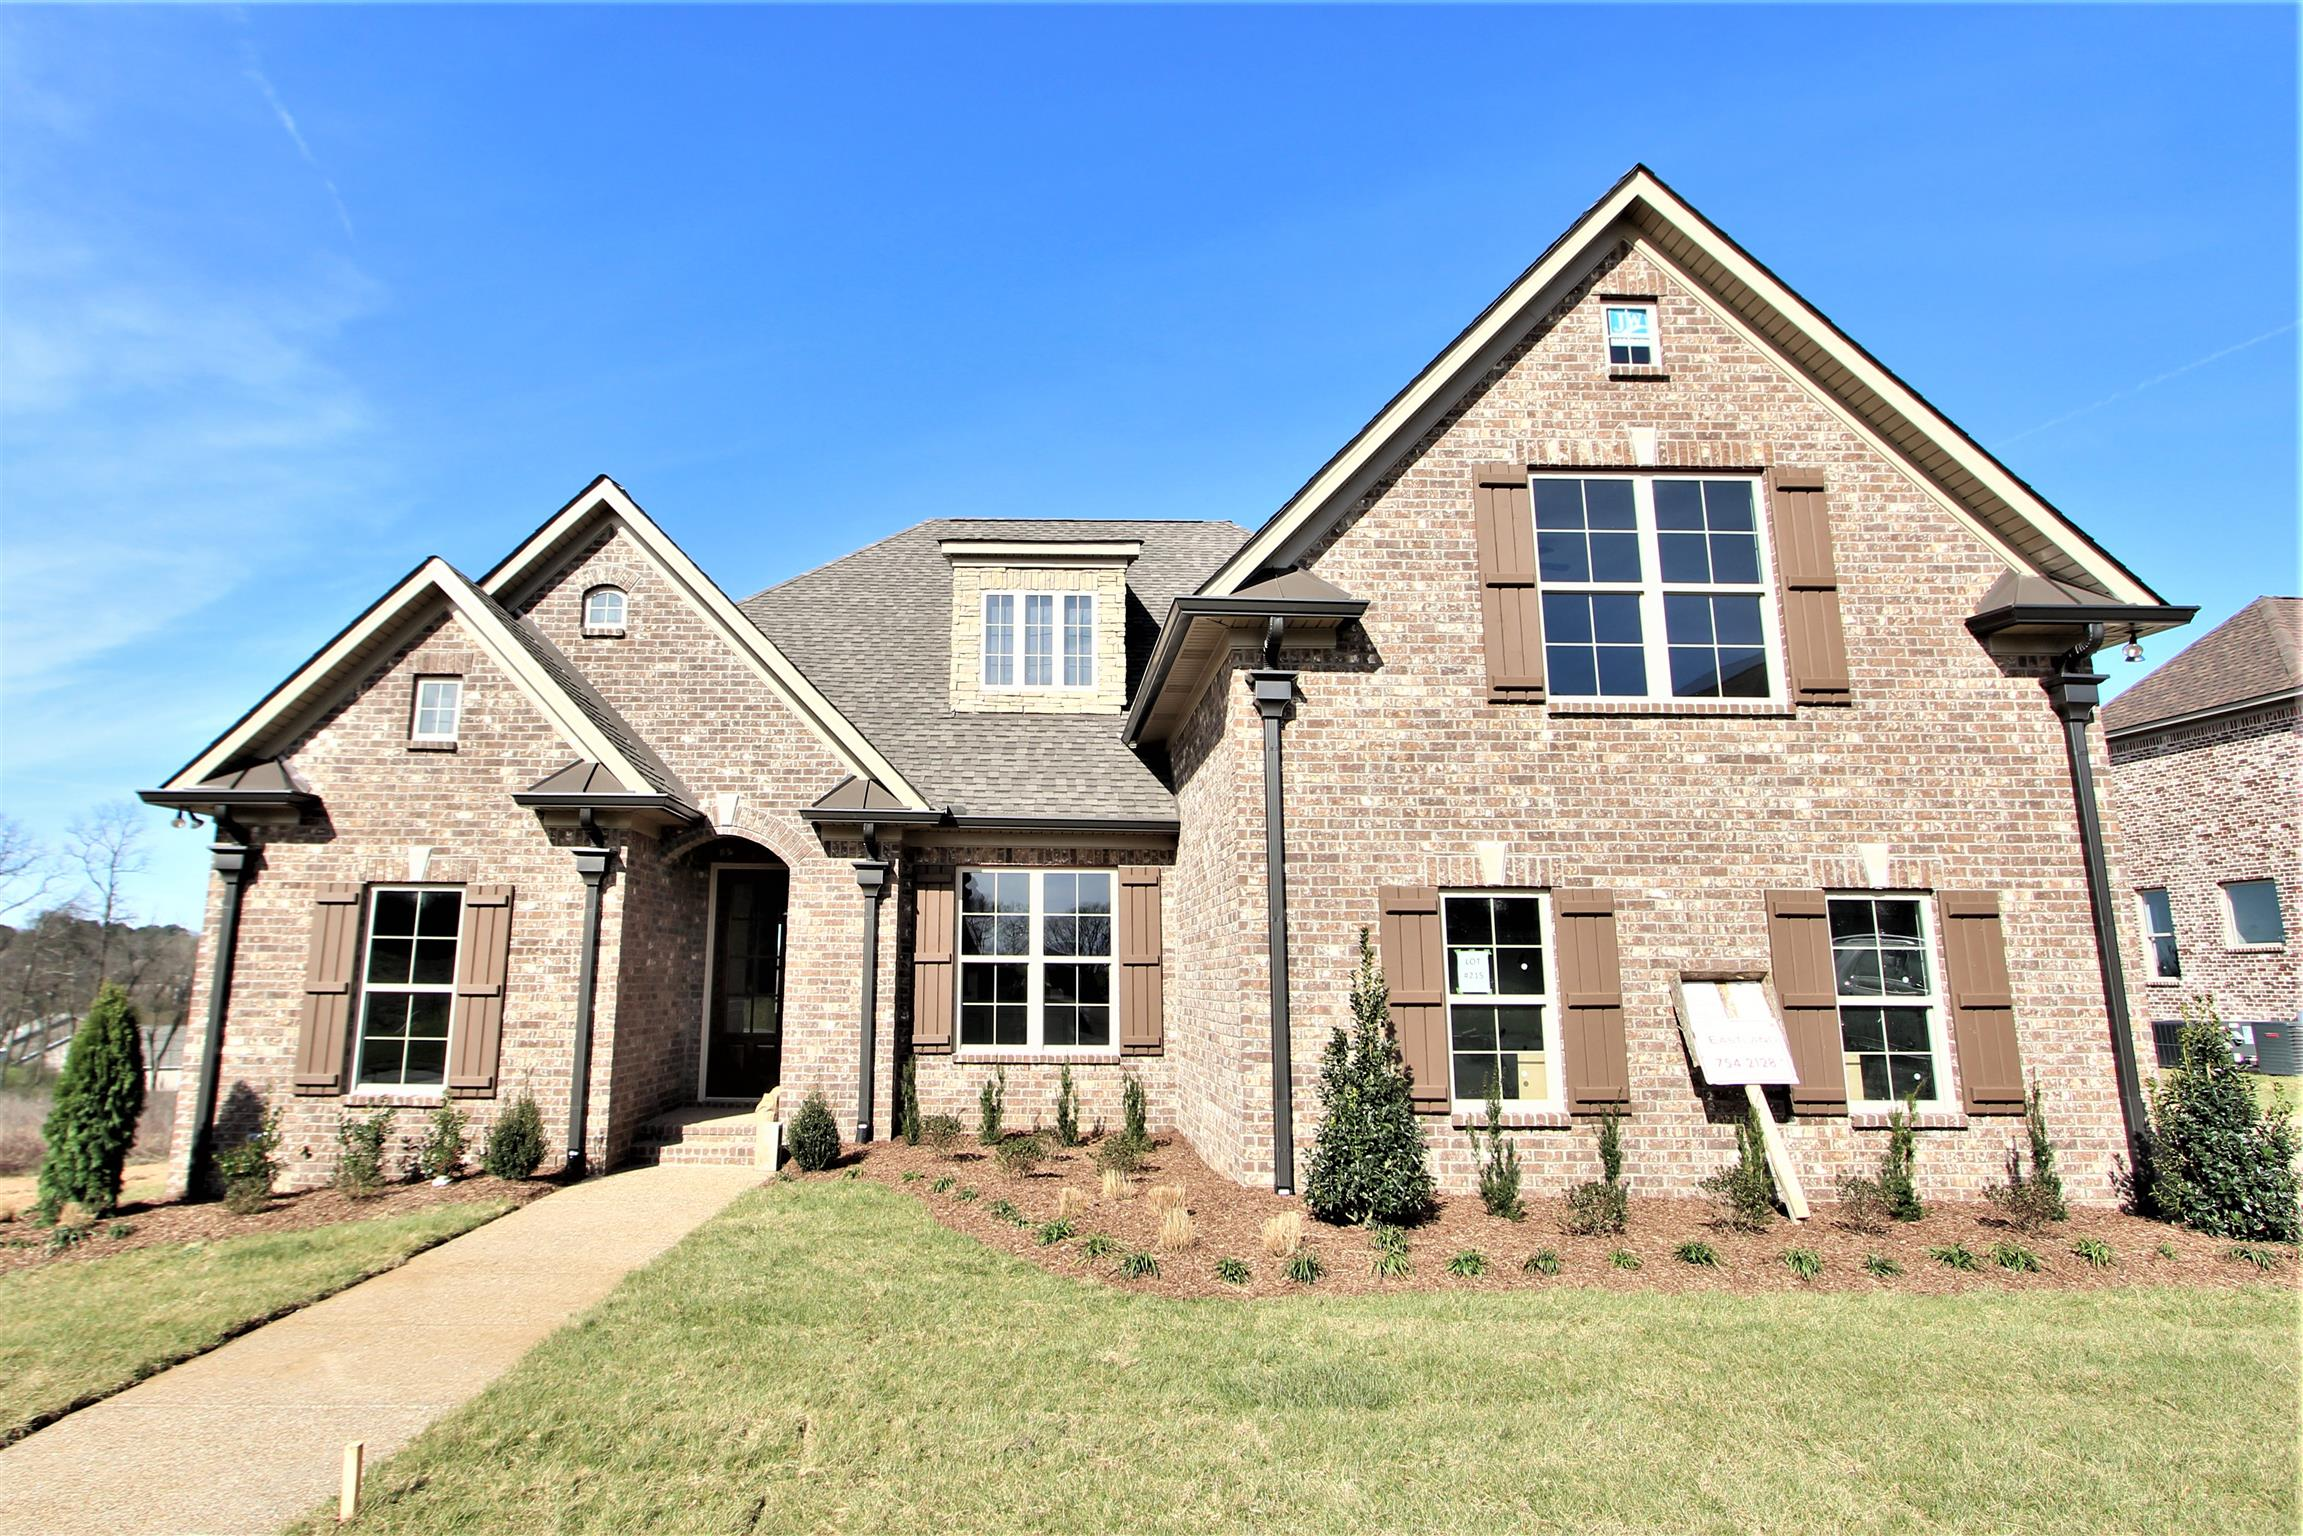 436 Whitley Way #215 37122 - One of Mount Juliet Homes for Sale